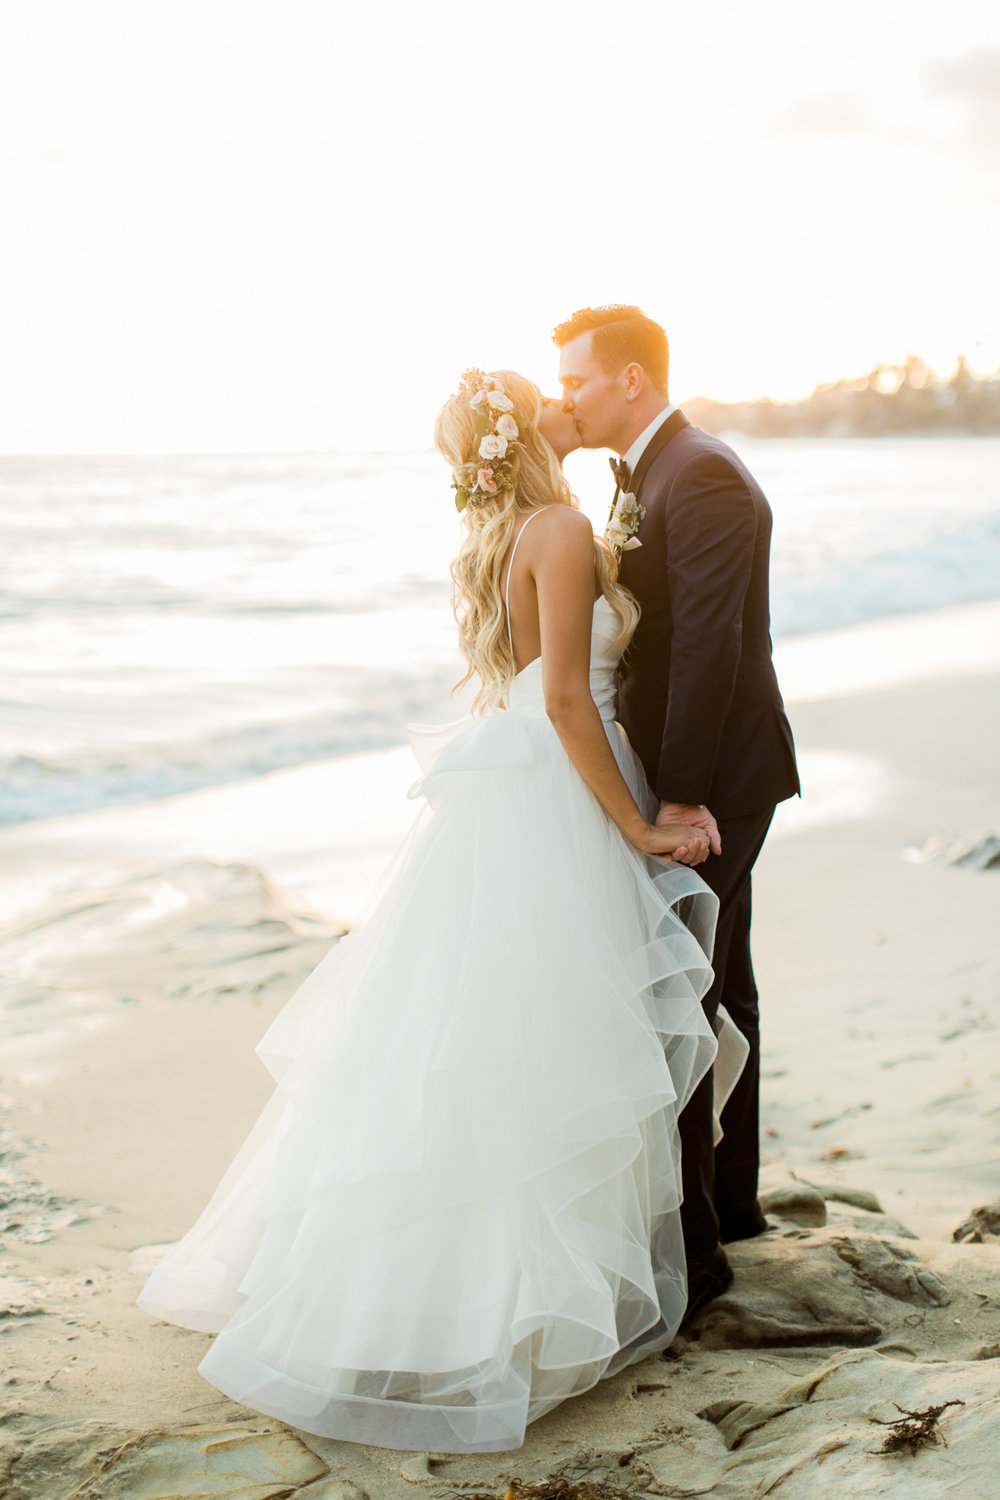 Orange_County_Laguna_Beach_Bride_Groom_Wedding_Gorgeous_Sunset_Hair_Makeup_12.jpg